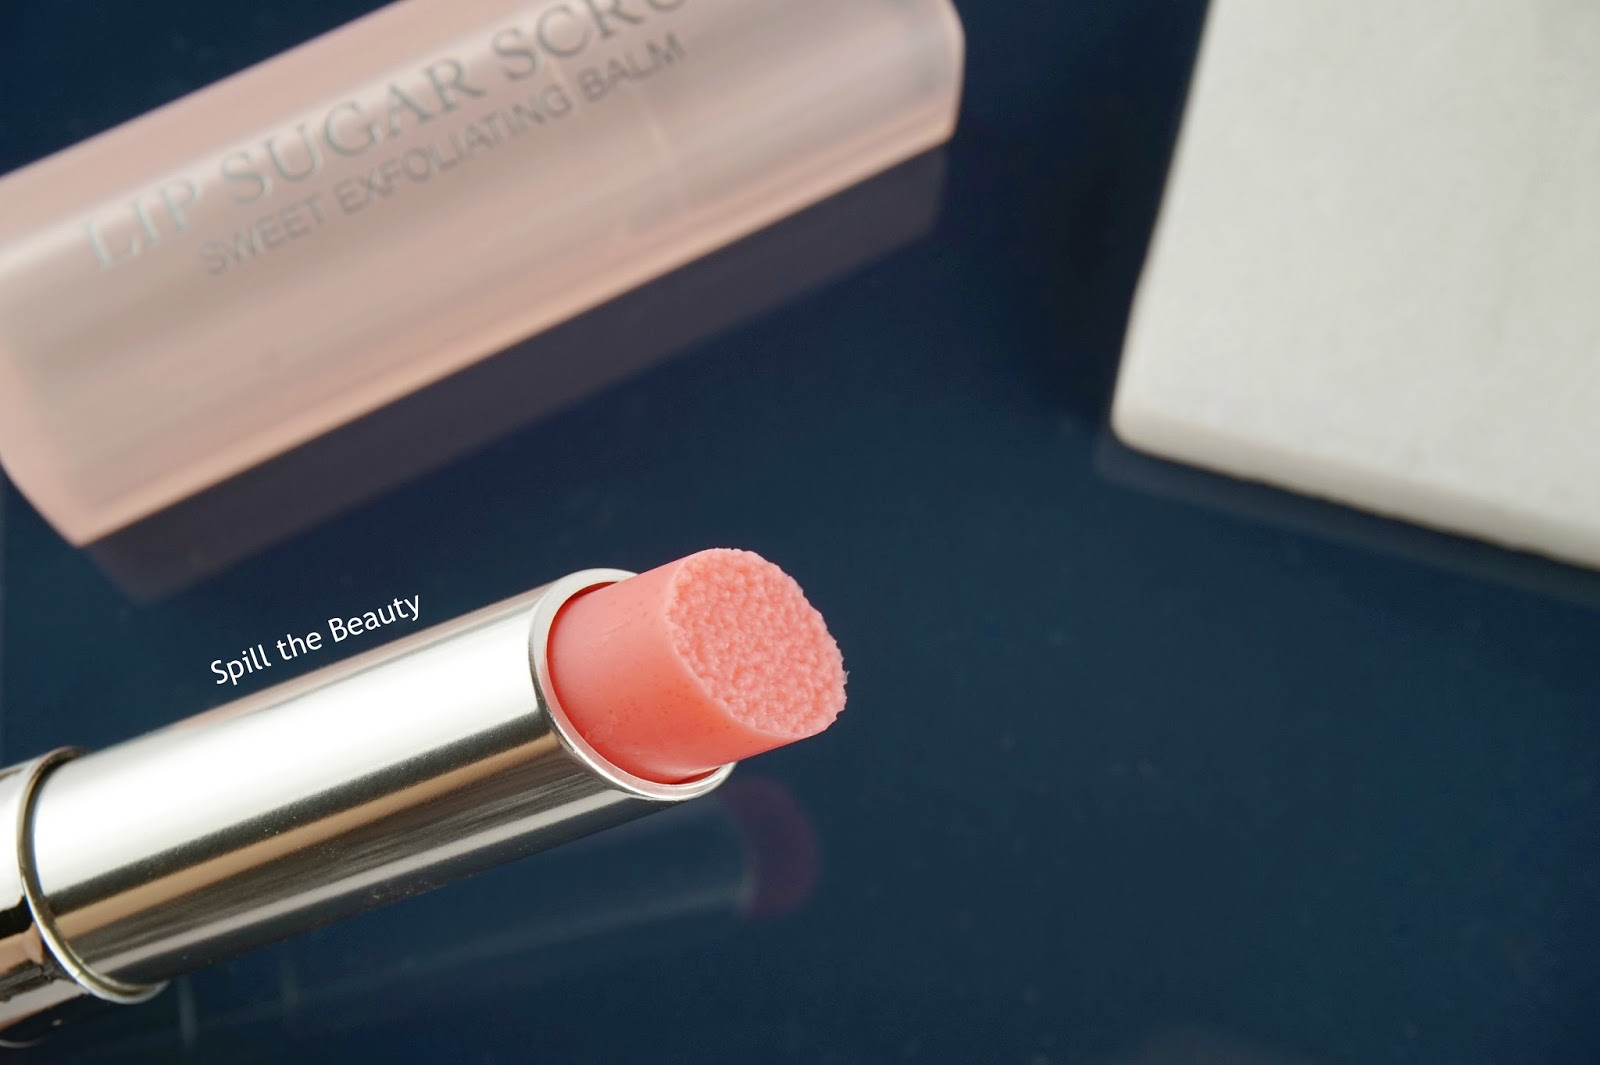 dior addict lip sugar scrub balm 001 dior lip glow colour reviver balm berry 006 review swatches